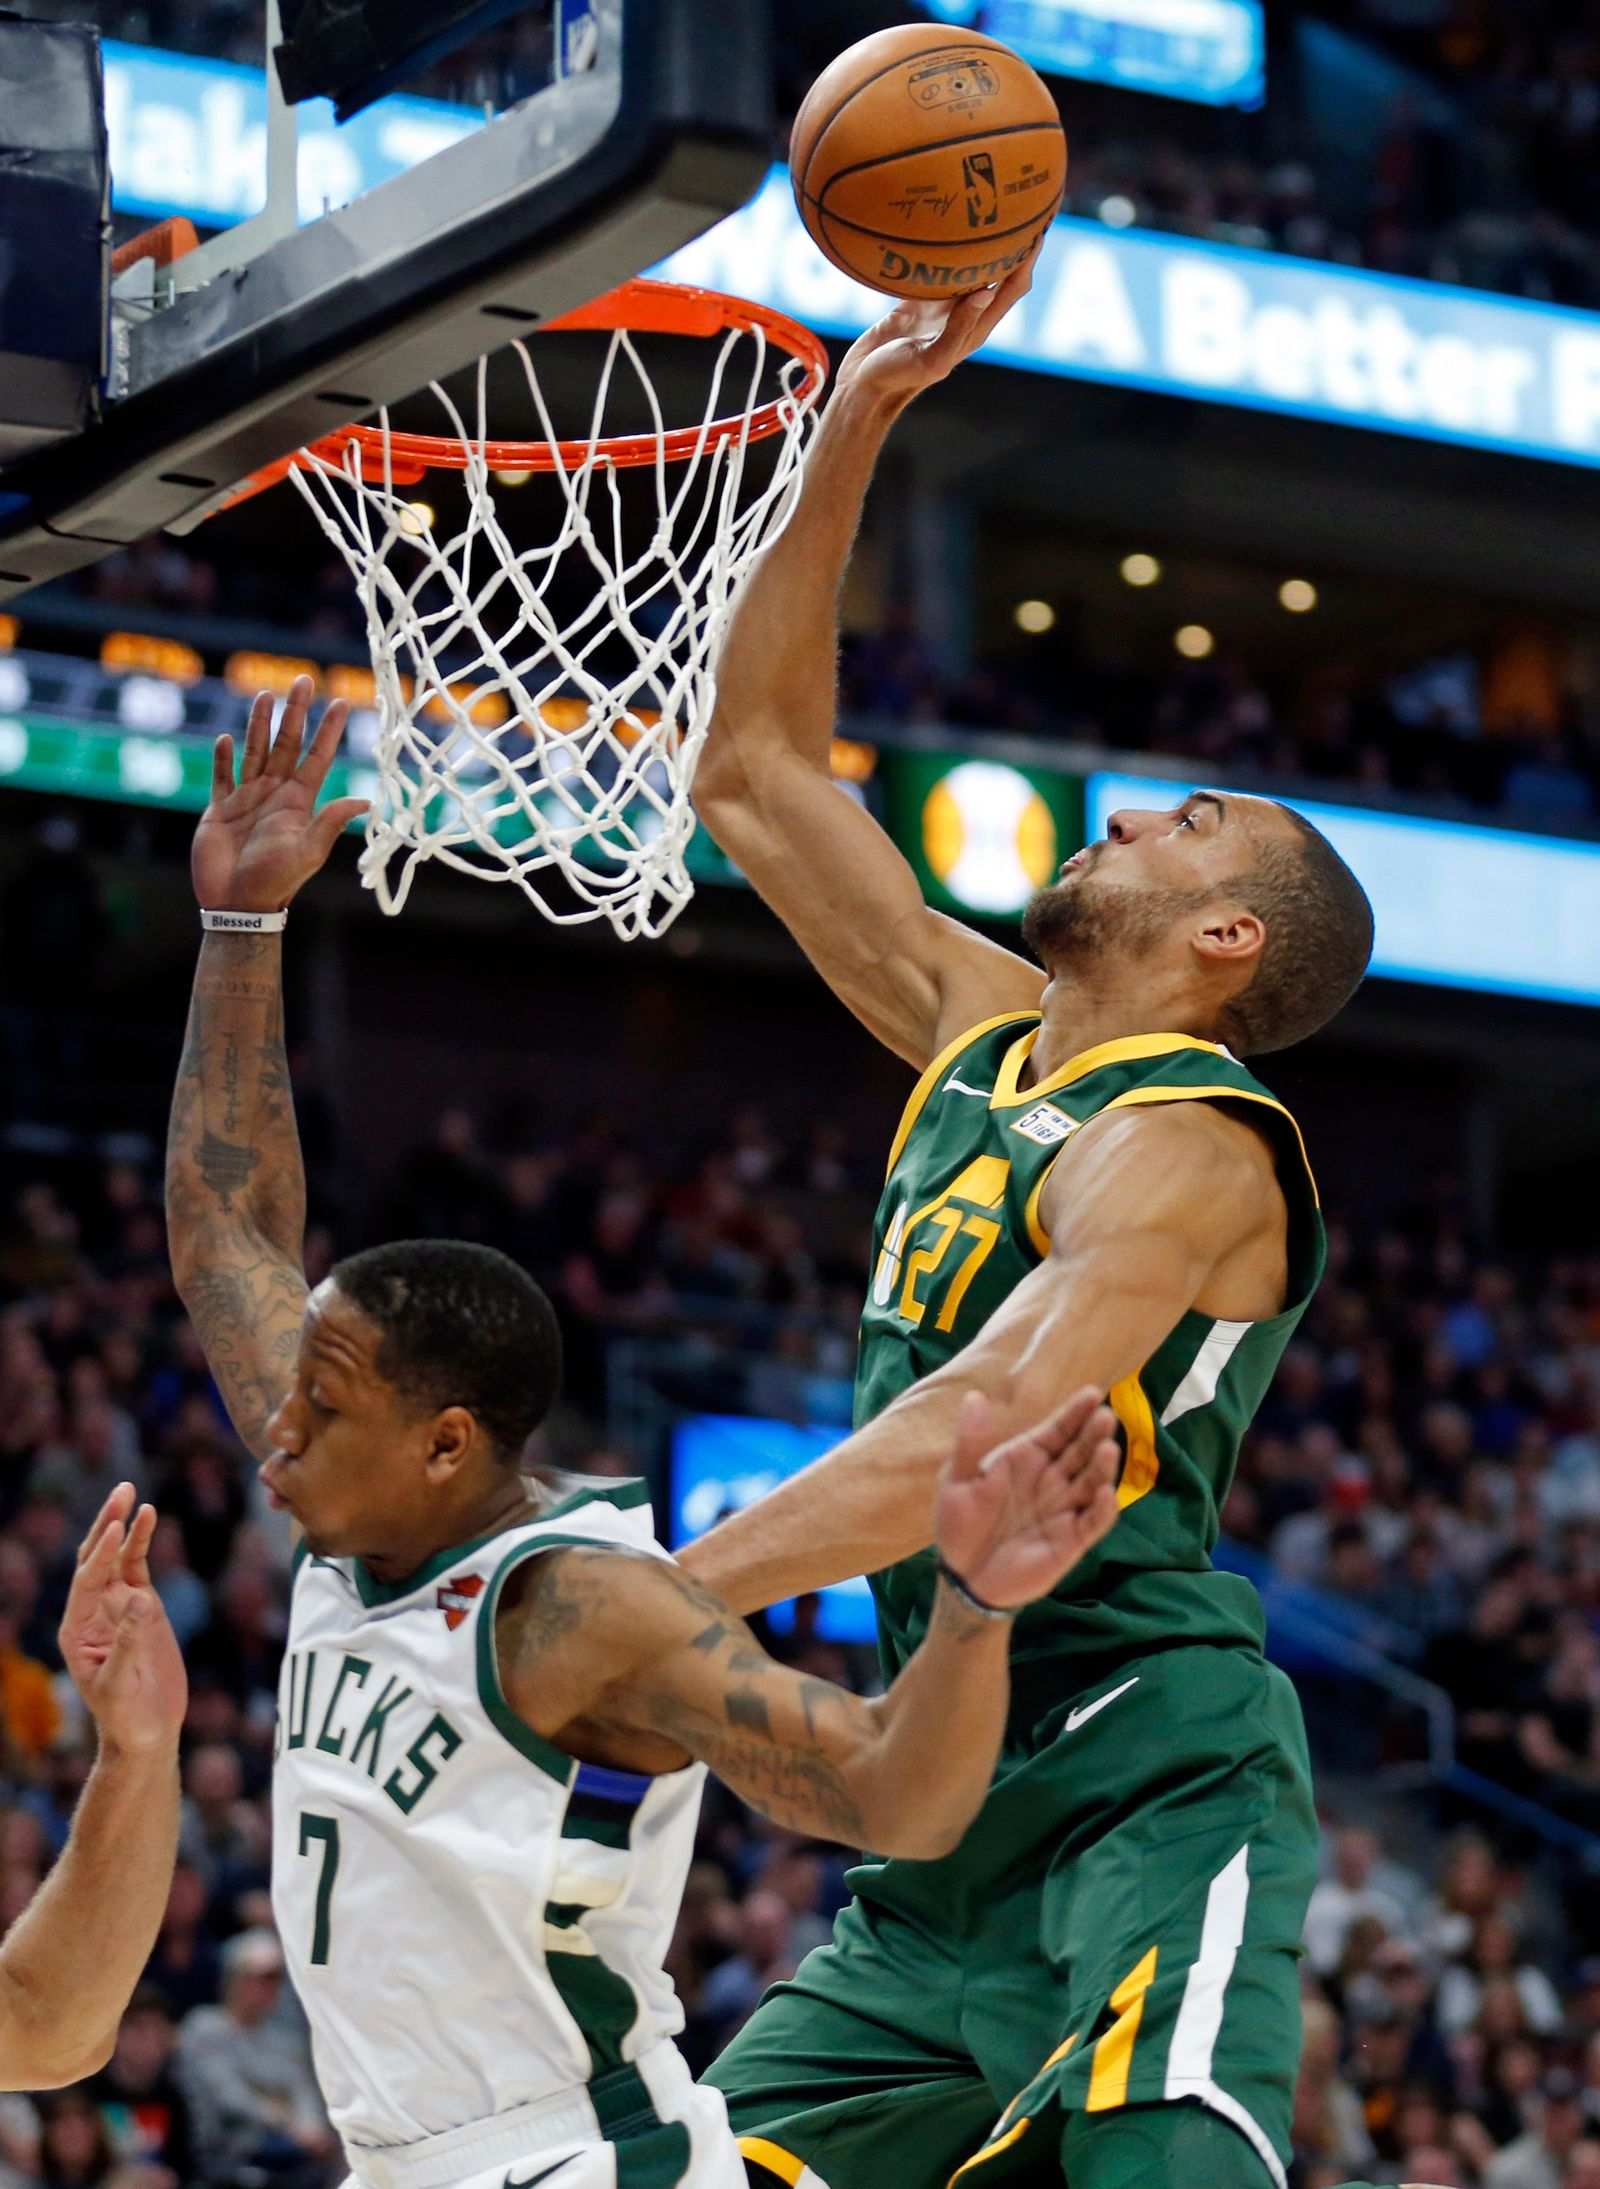 Utah Jazz center Rudy Gobert, right, tips the ball as Milwaukee Bucks guard Isaiah Canaan (7) defends during the first half of an NBA basketball game Saturday, March 2, 2019, in Salt Lake City. (AP Photo/Rick Bowmer)